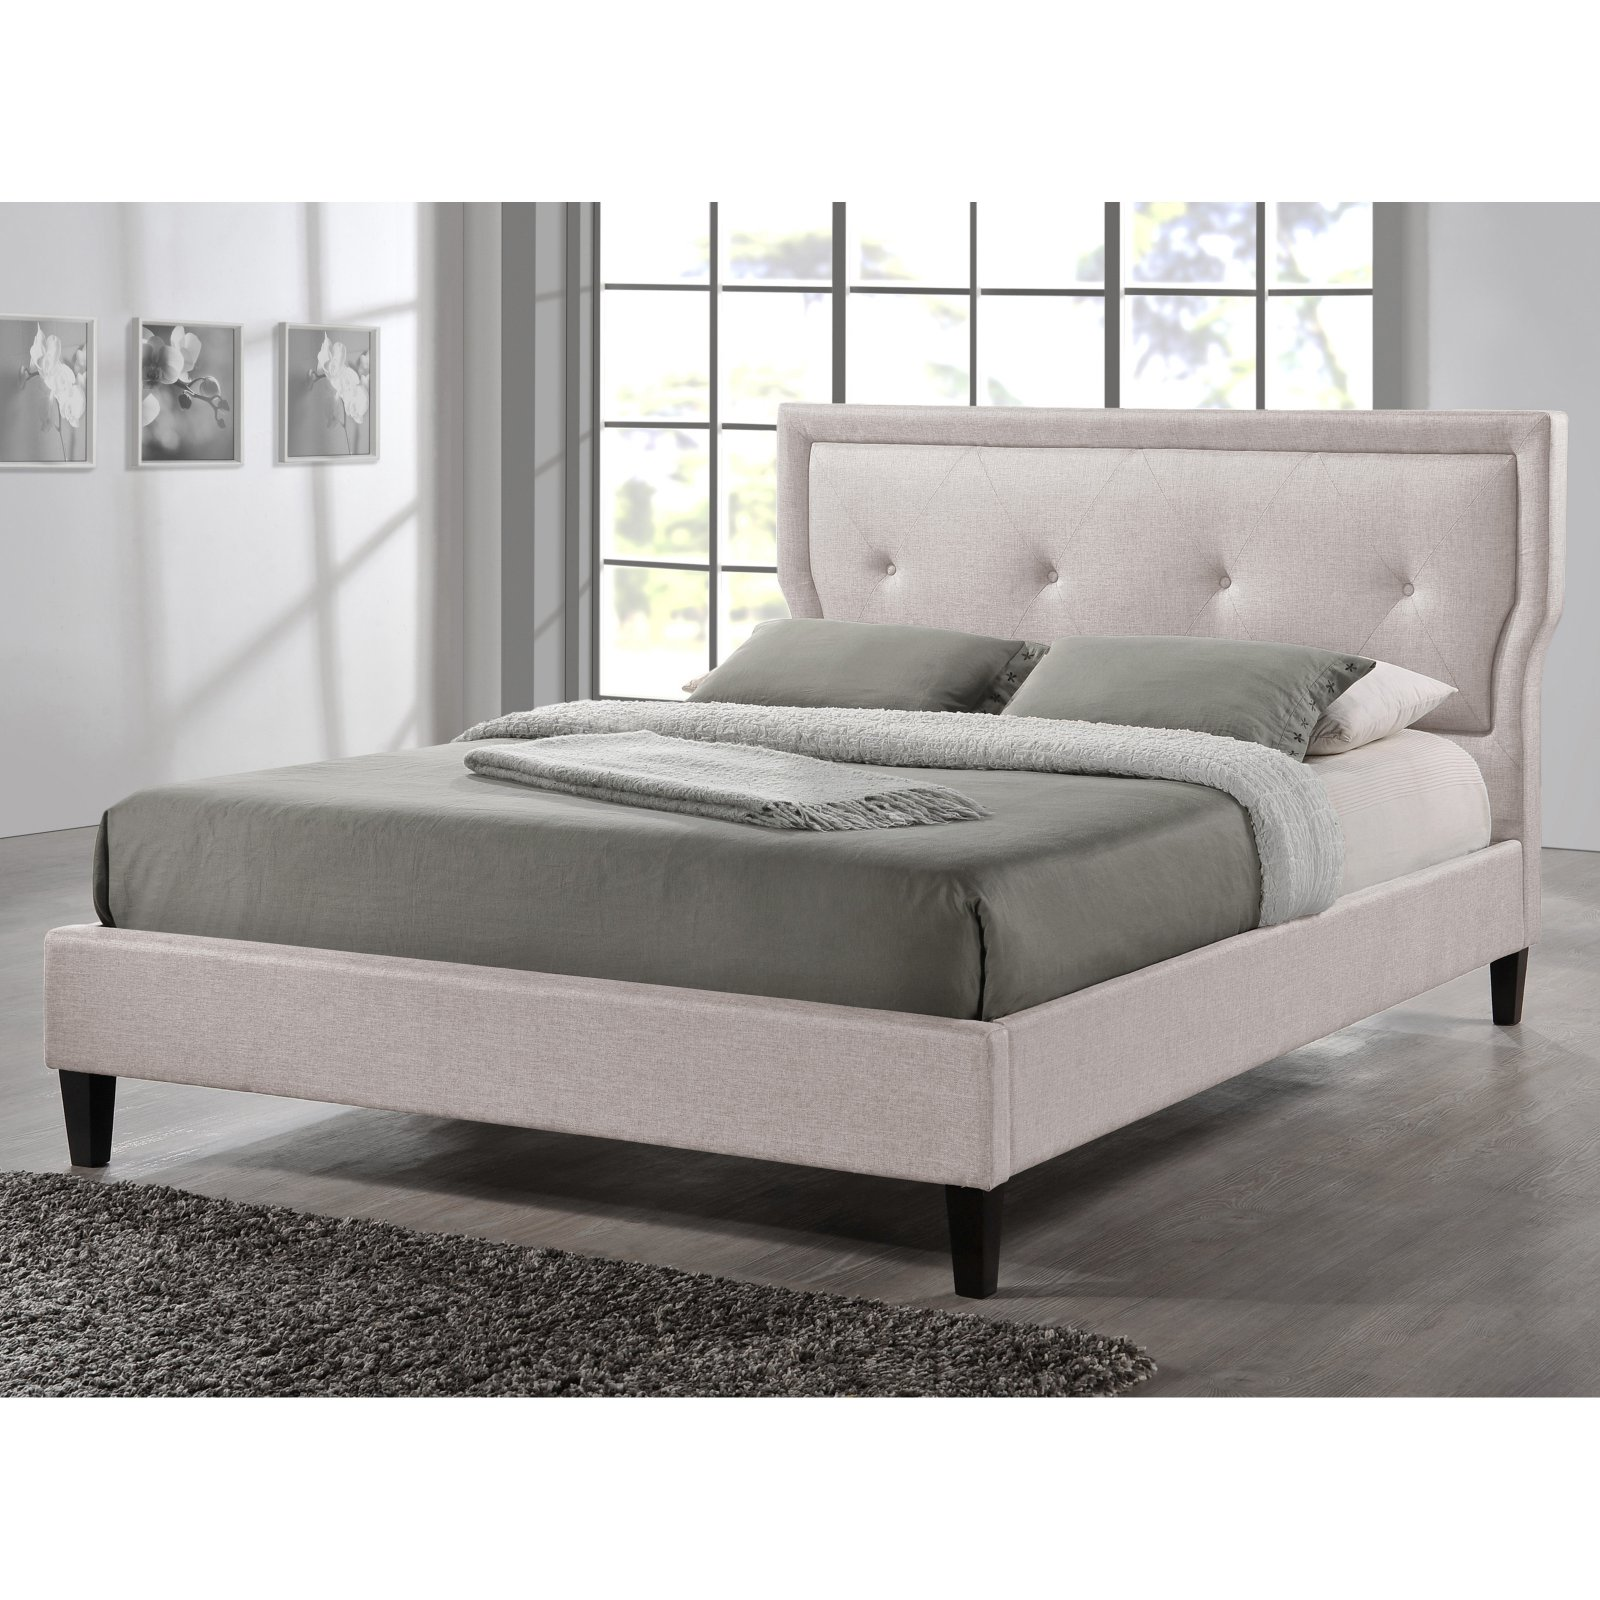 Baxton Studio Marquesa Upholstered Platform Bed Light Beige Size